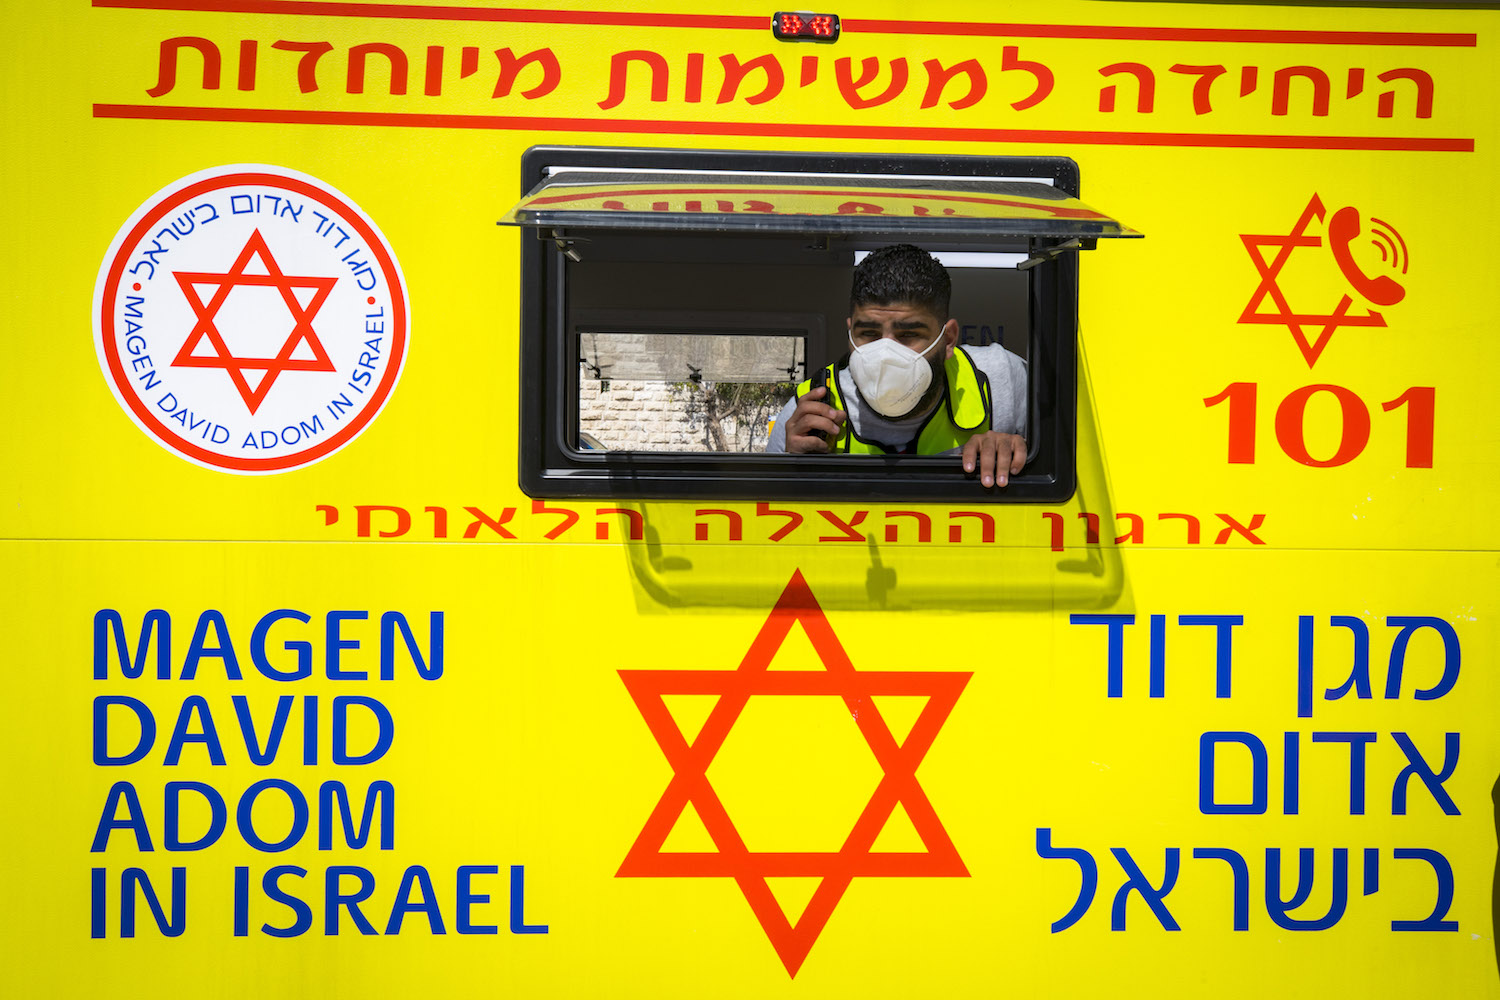 A Magen David Adom mobile clinic provides COVID-19 vaccines in Damascus Gate outside Jerusalem's Old City, February 26, 2021. (Olivier Fitoussi/Flash90)